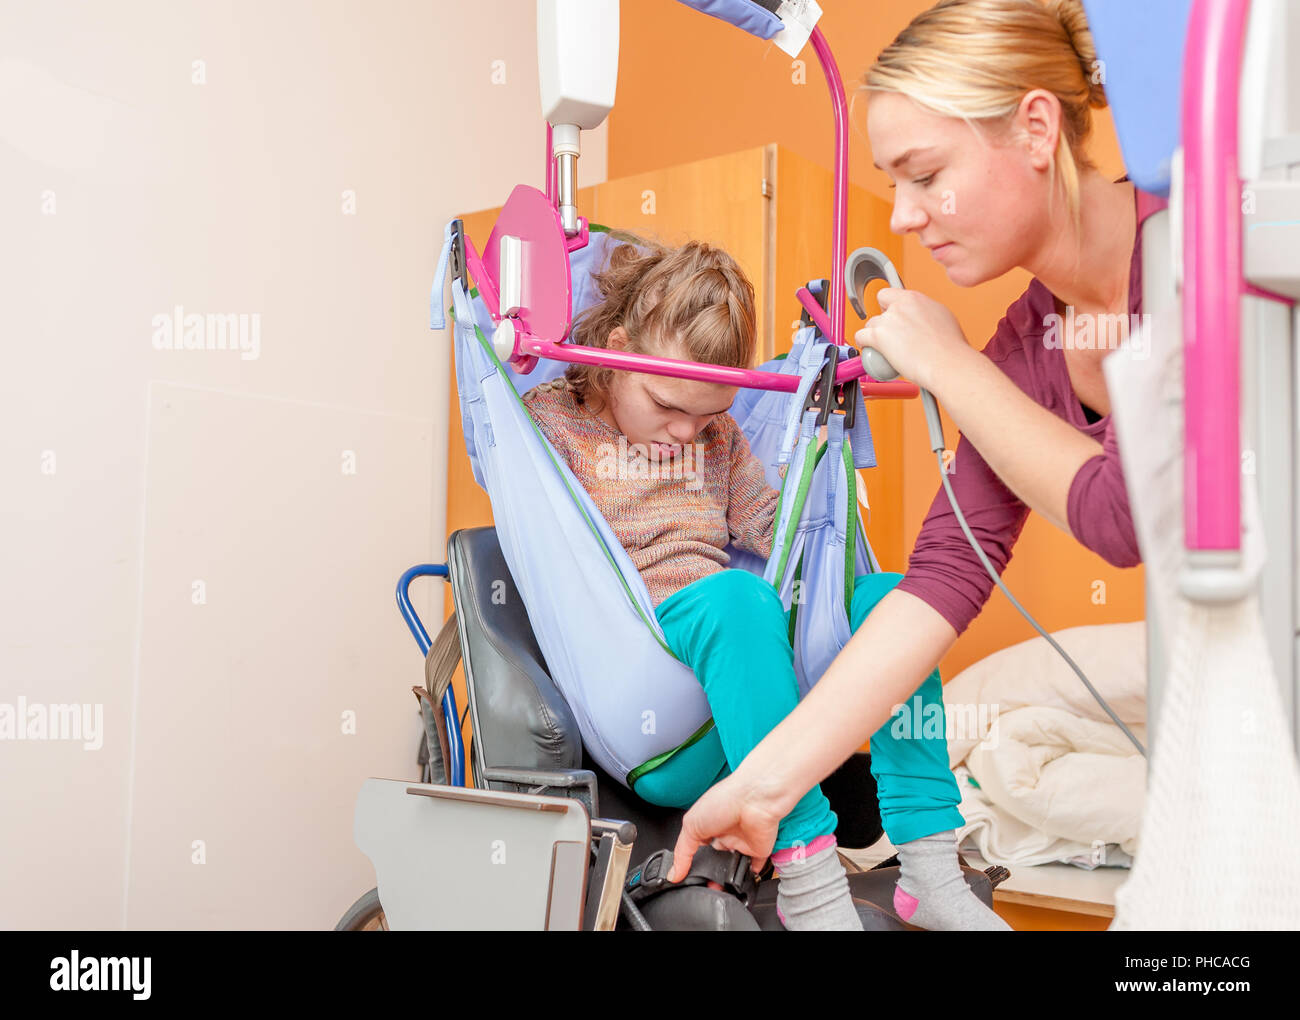 A disabled child being cared for by a special needs carer - Stock Image